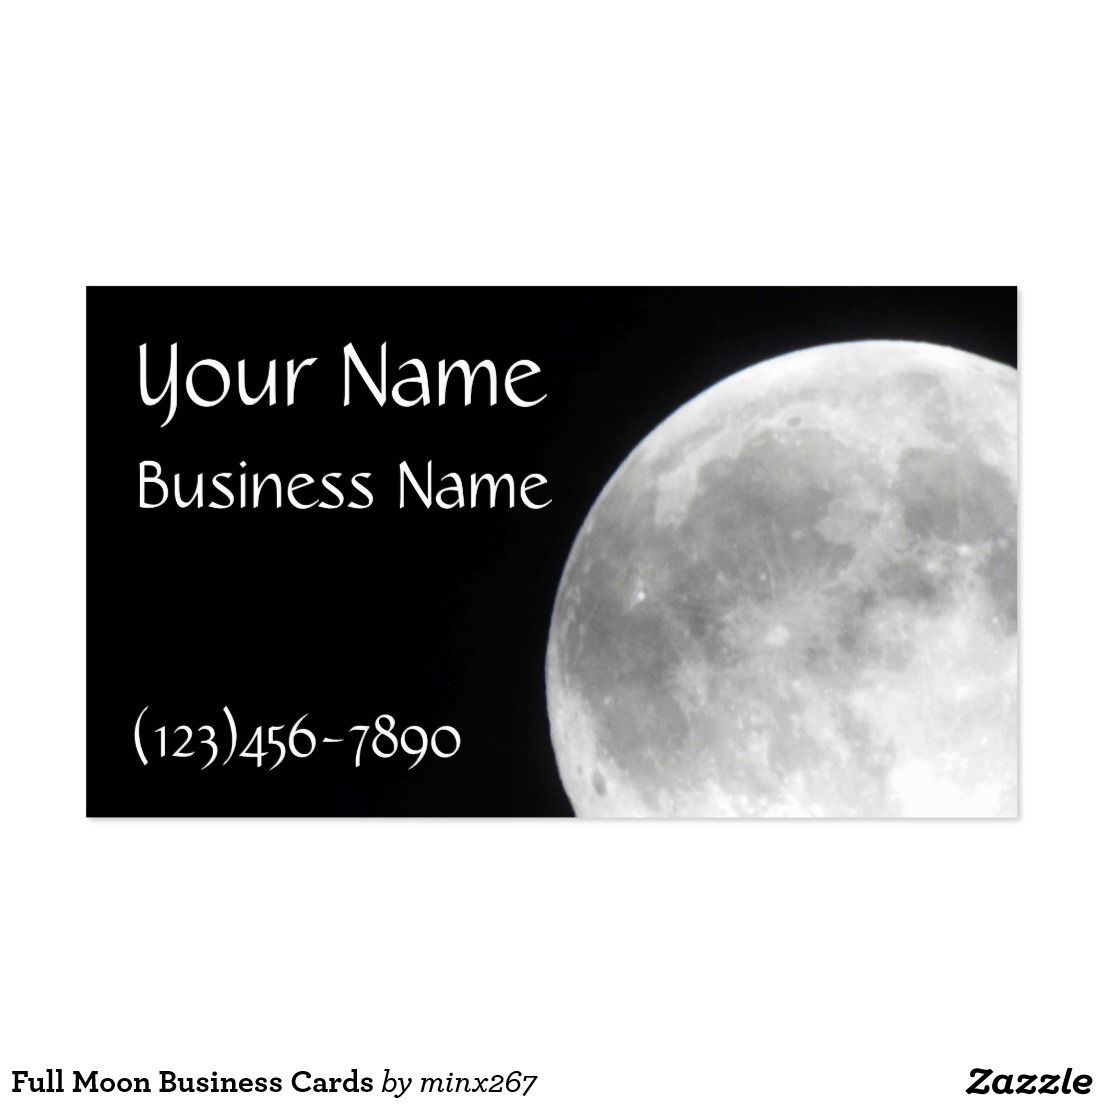 Full Moon Business Cards Printing Business Cards Event Planner Business Card Custom Business Cards